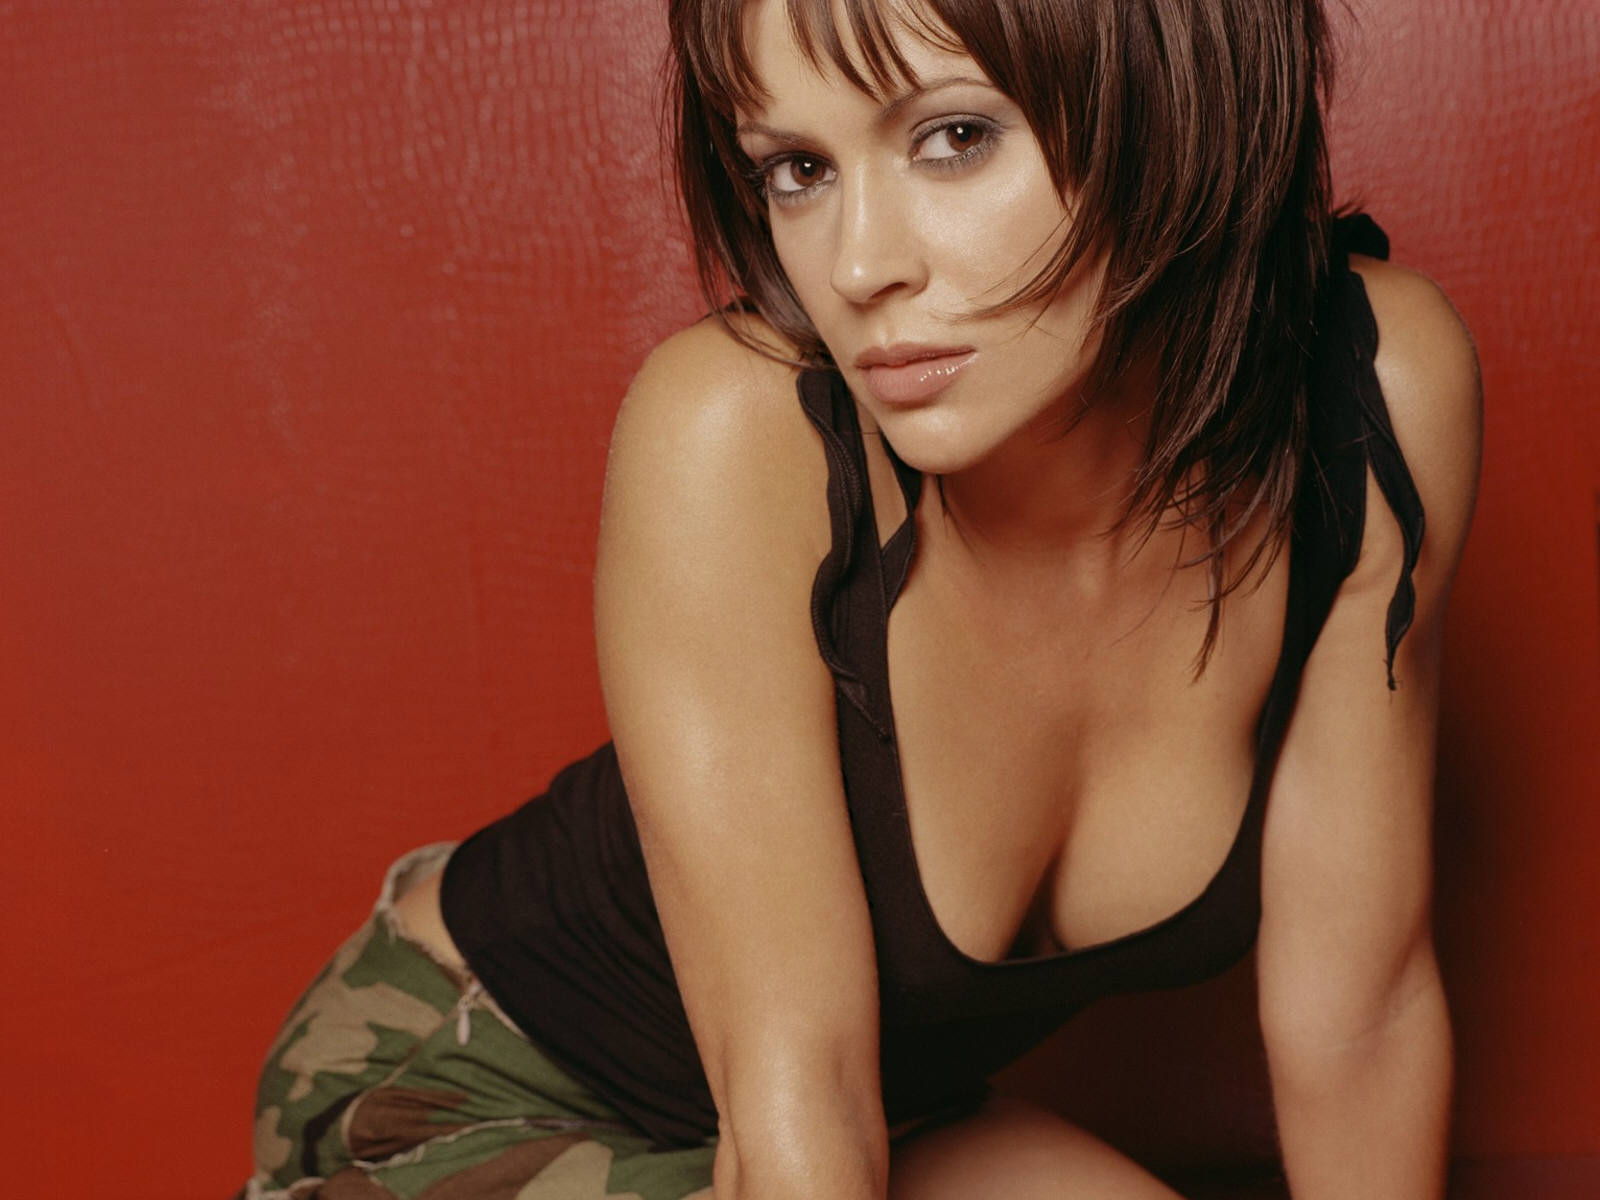 alyssa milano celebrities - photo #45